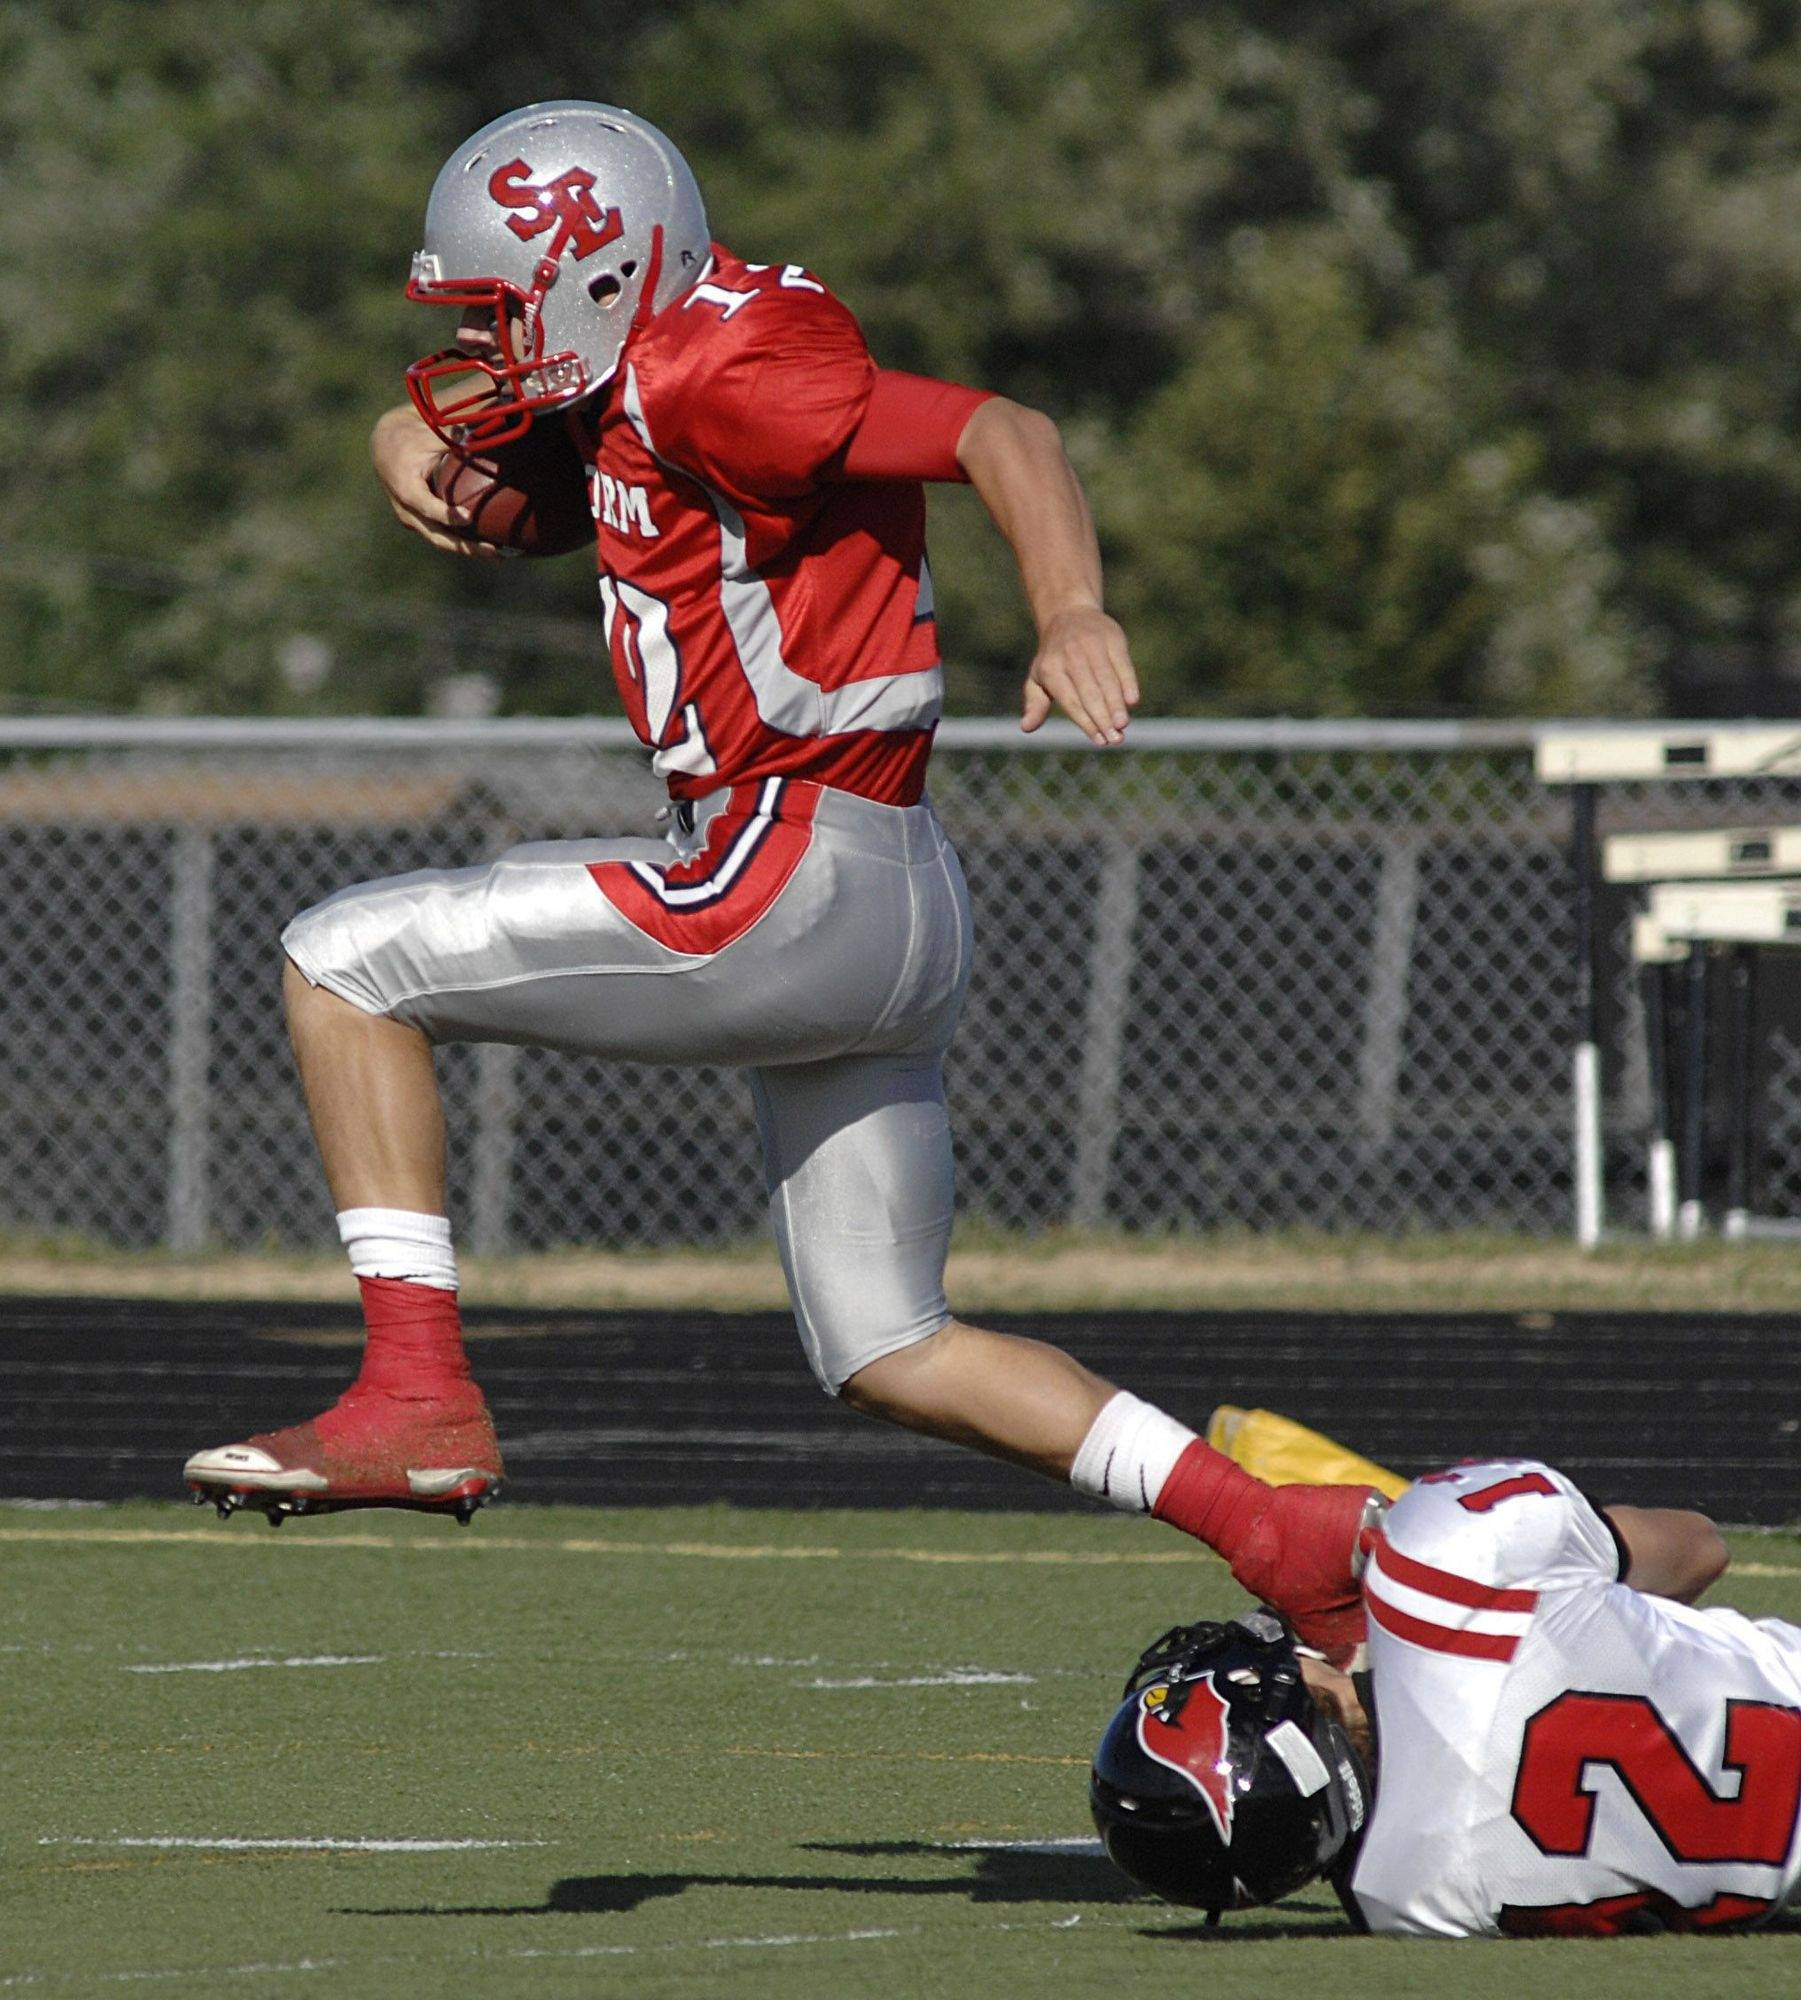 South Elgin's John Menken leaps out of the grasp of Metamora's Beau Geier to score a touchdown in the second quarter on Saturday, September 4.